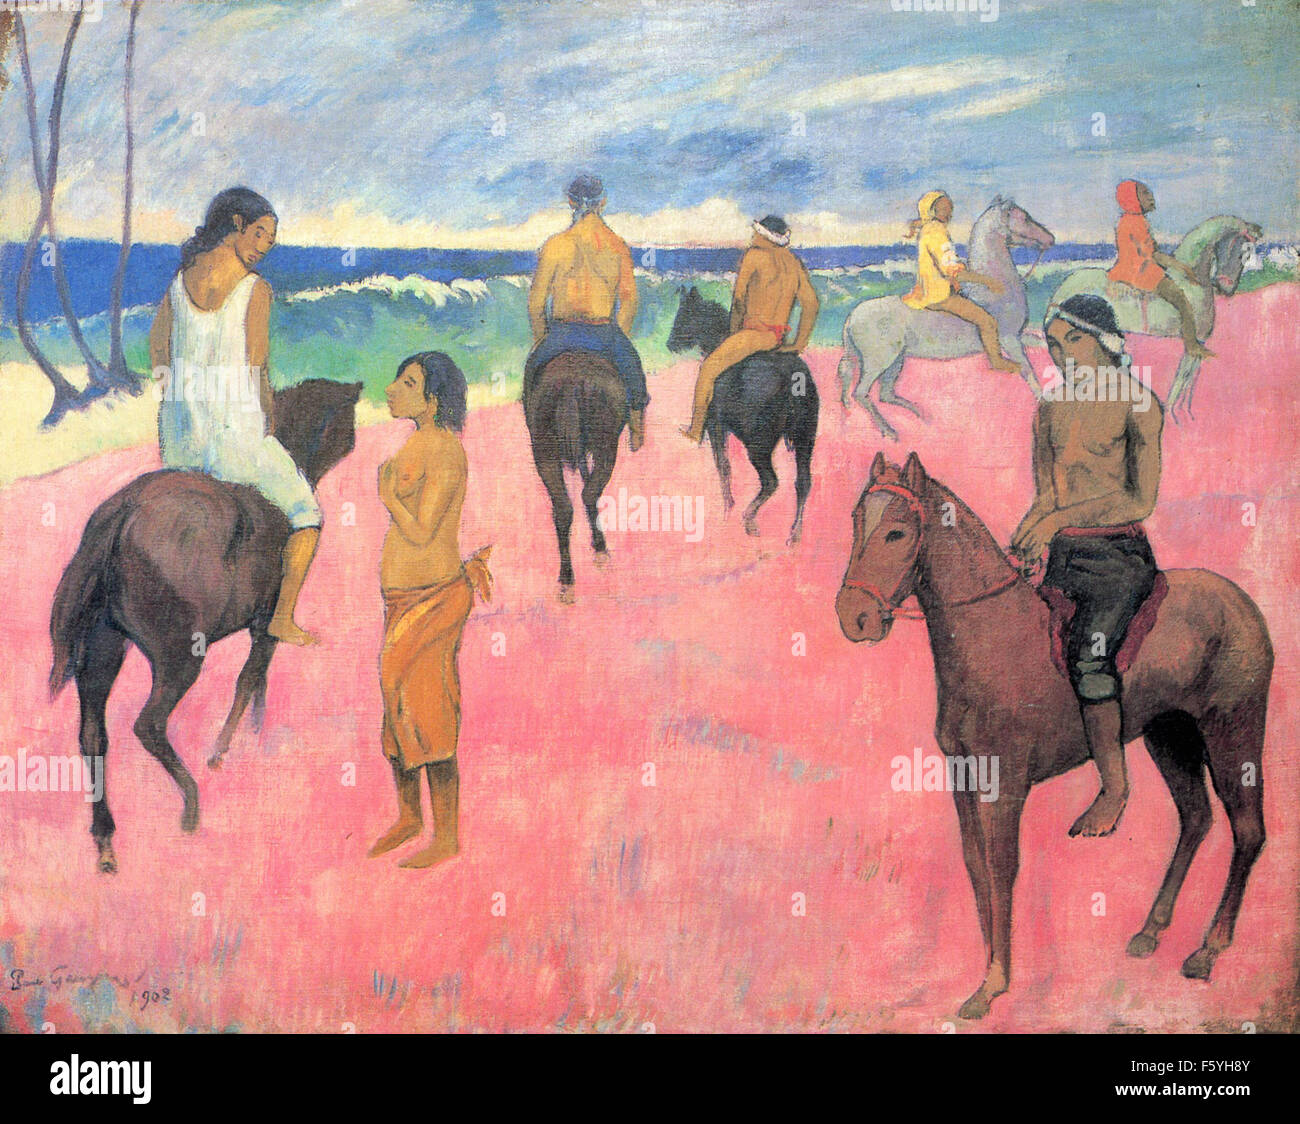 Paul Gauguin - Riders on the Beach (II) - Stock Image